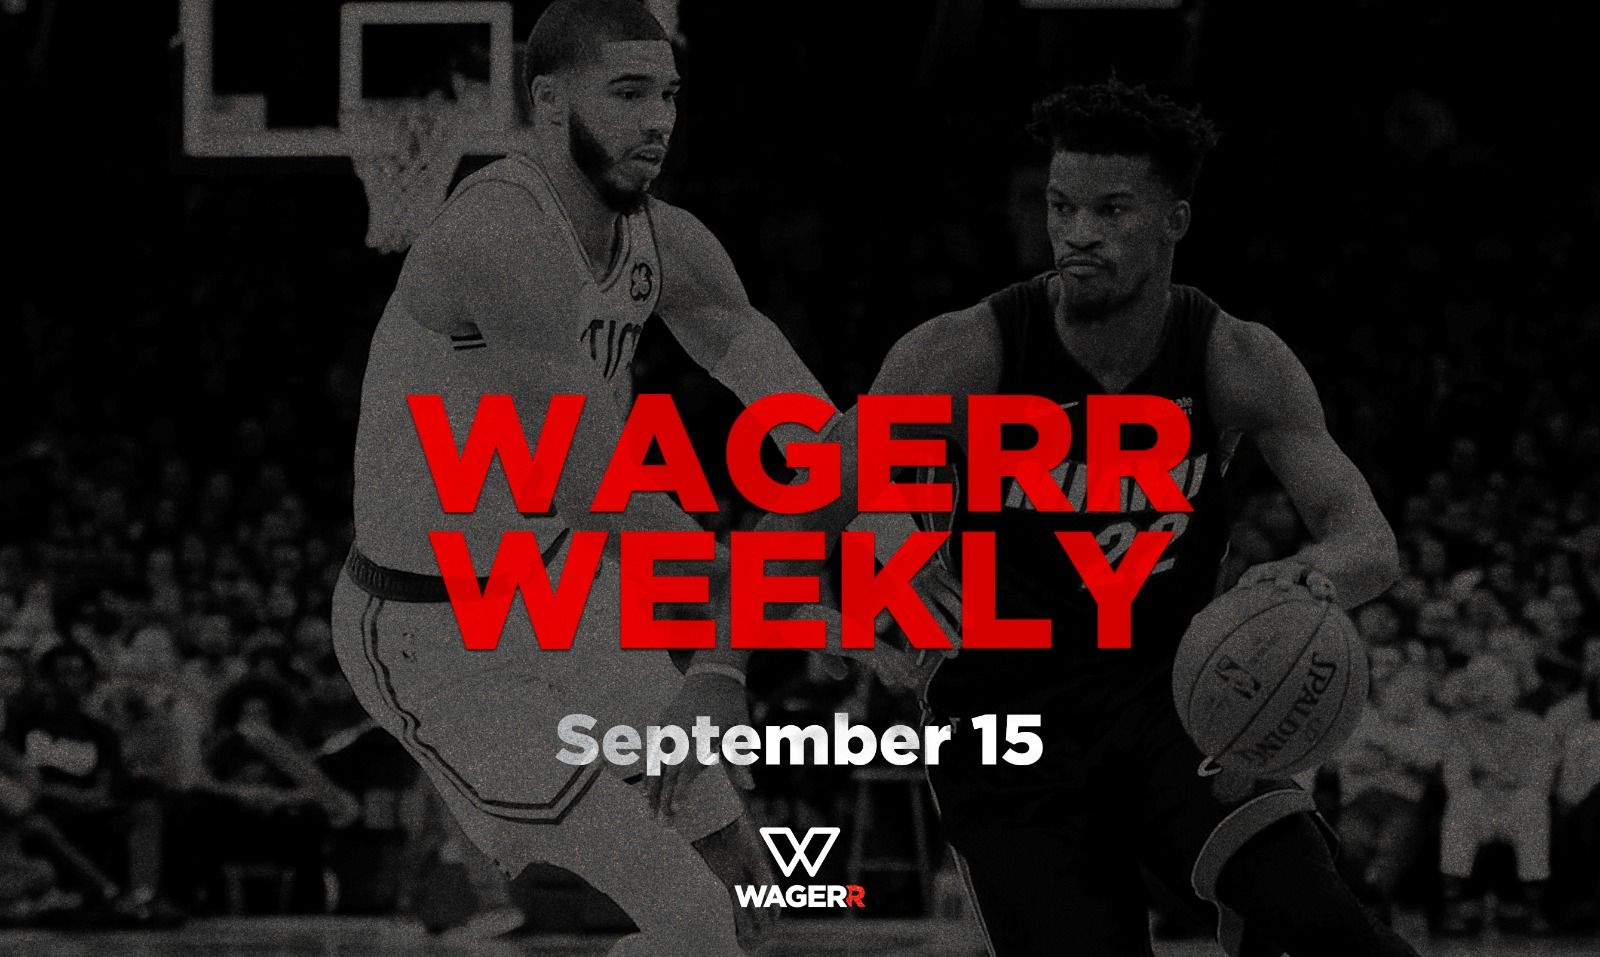 Wagerr Weekly: September 15